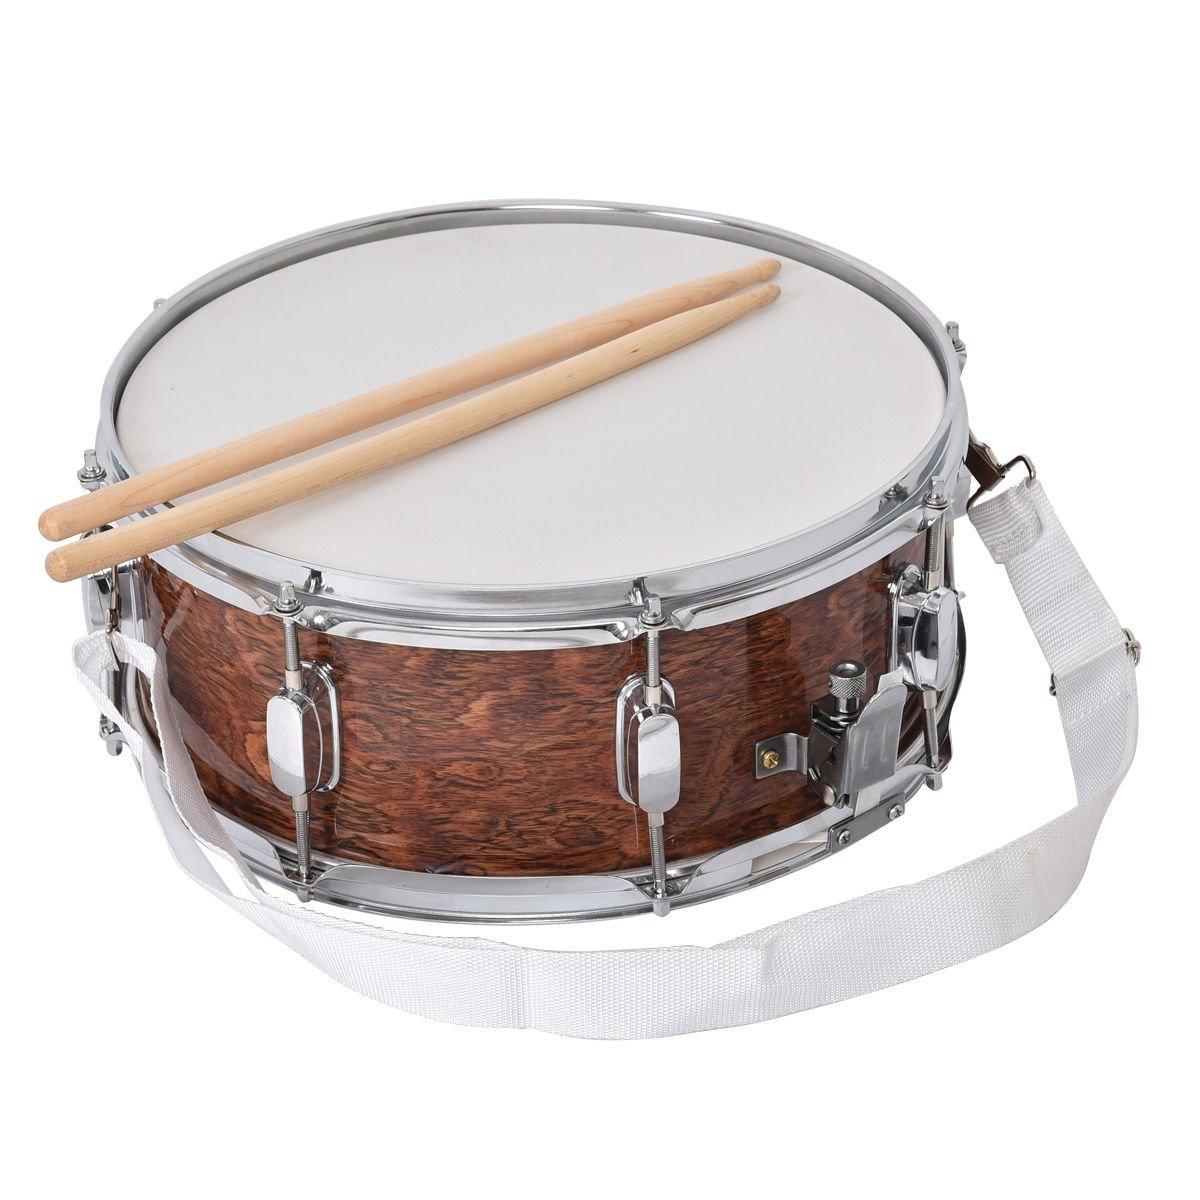 """New 14"""" x 5.5"""" Snare Drum w  2 Drumstick & Key & Strap Wood Shell Percussion Kit by"""